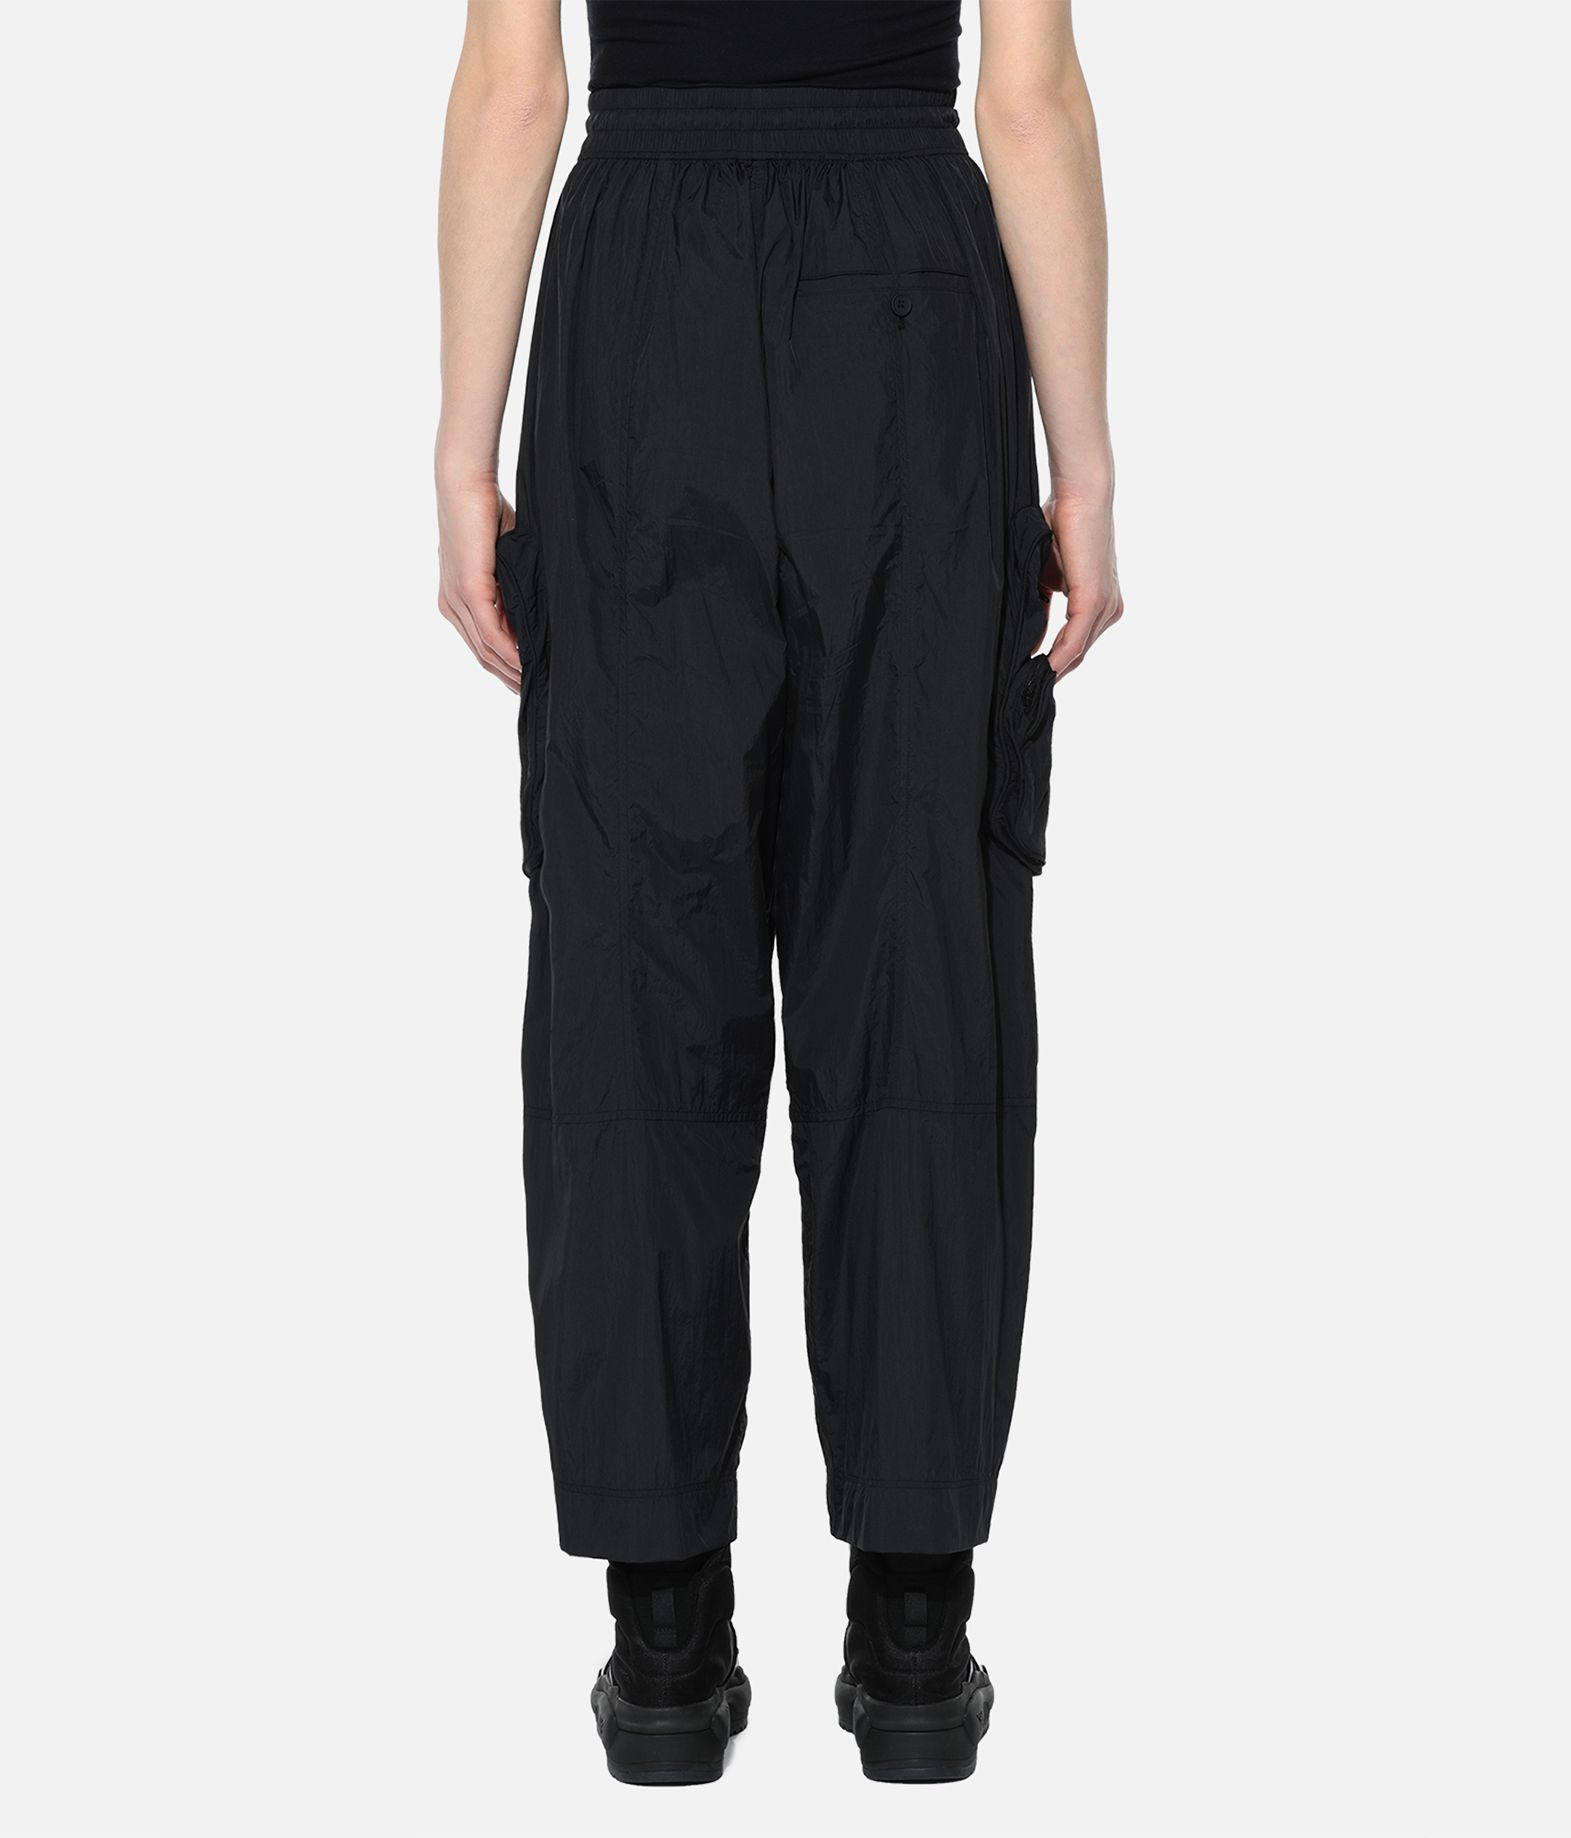 Y-3 Y-3 Shell Track Pants Track pant Woman d